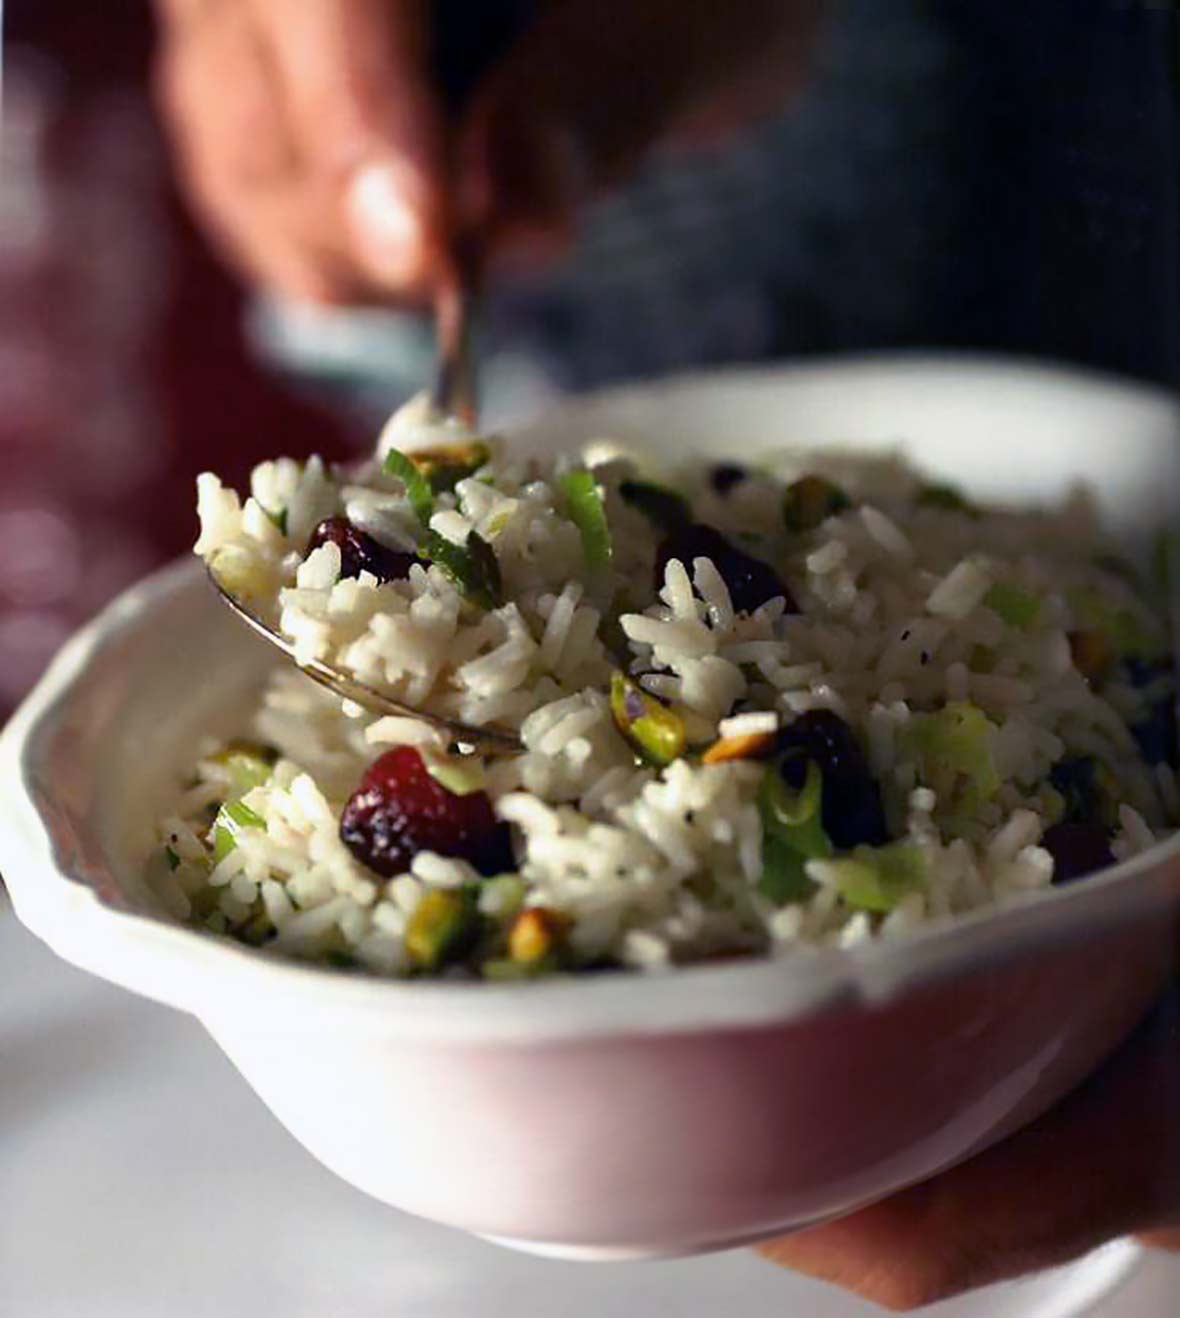 White bow of rice pilaf, dried cherries, and pistachios being stirred